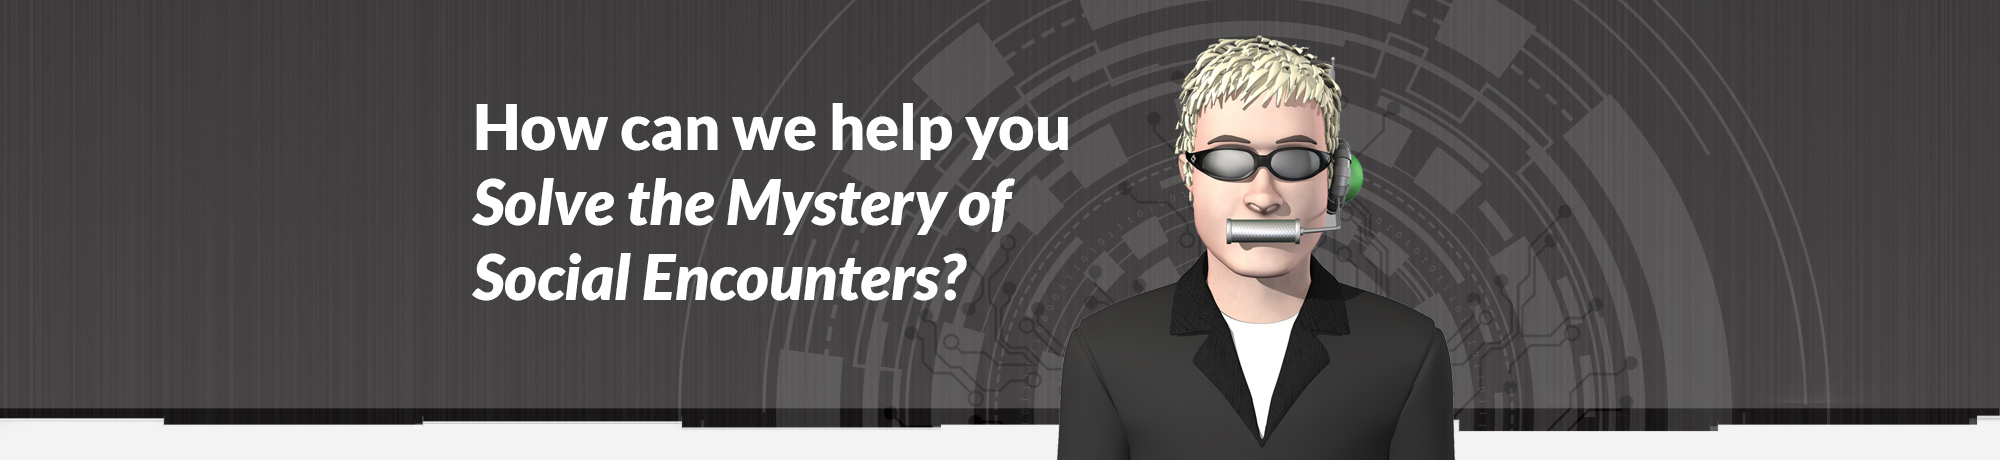 How can we help you Solve the Mystery of Social Encounters